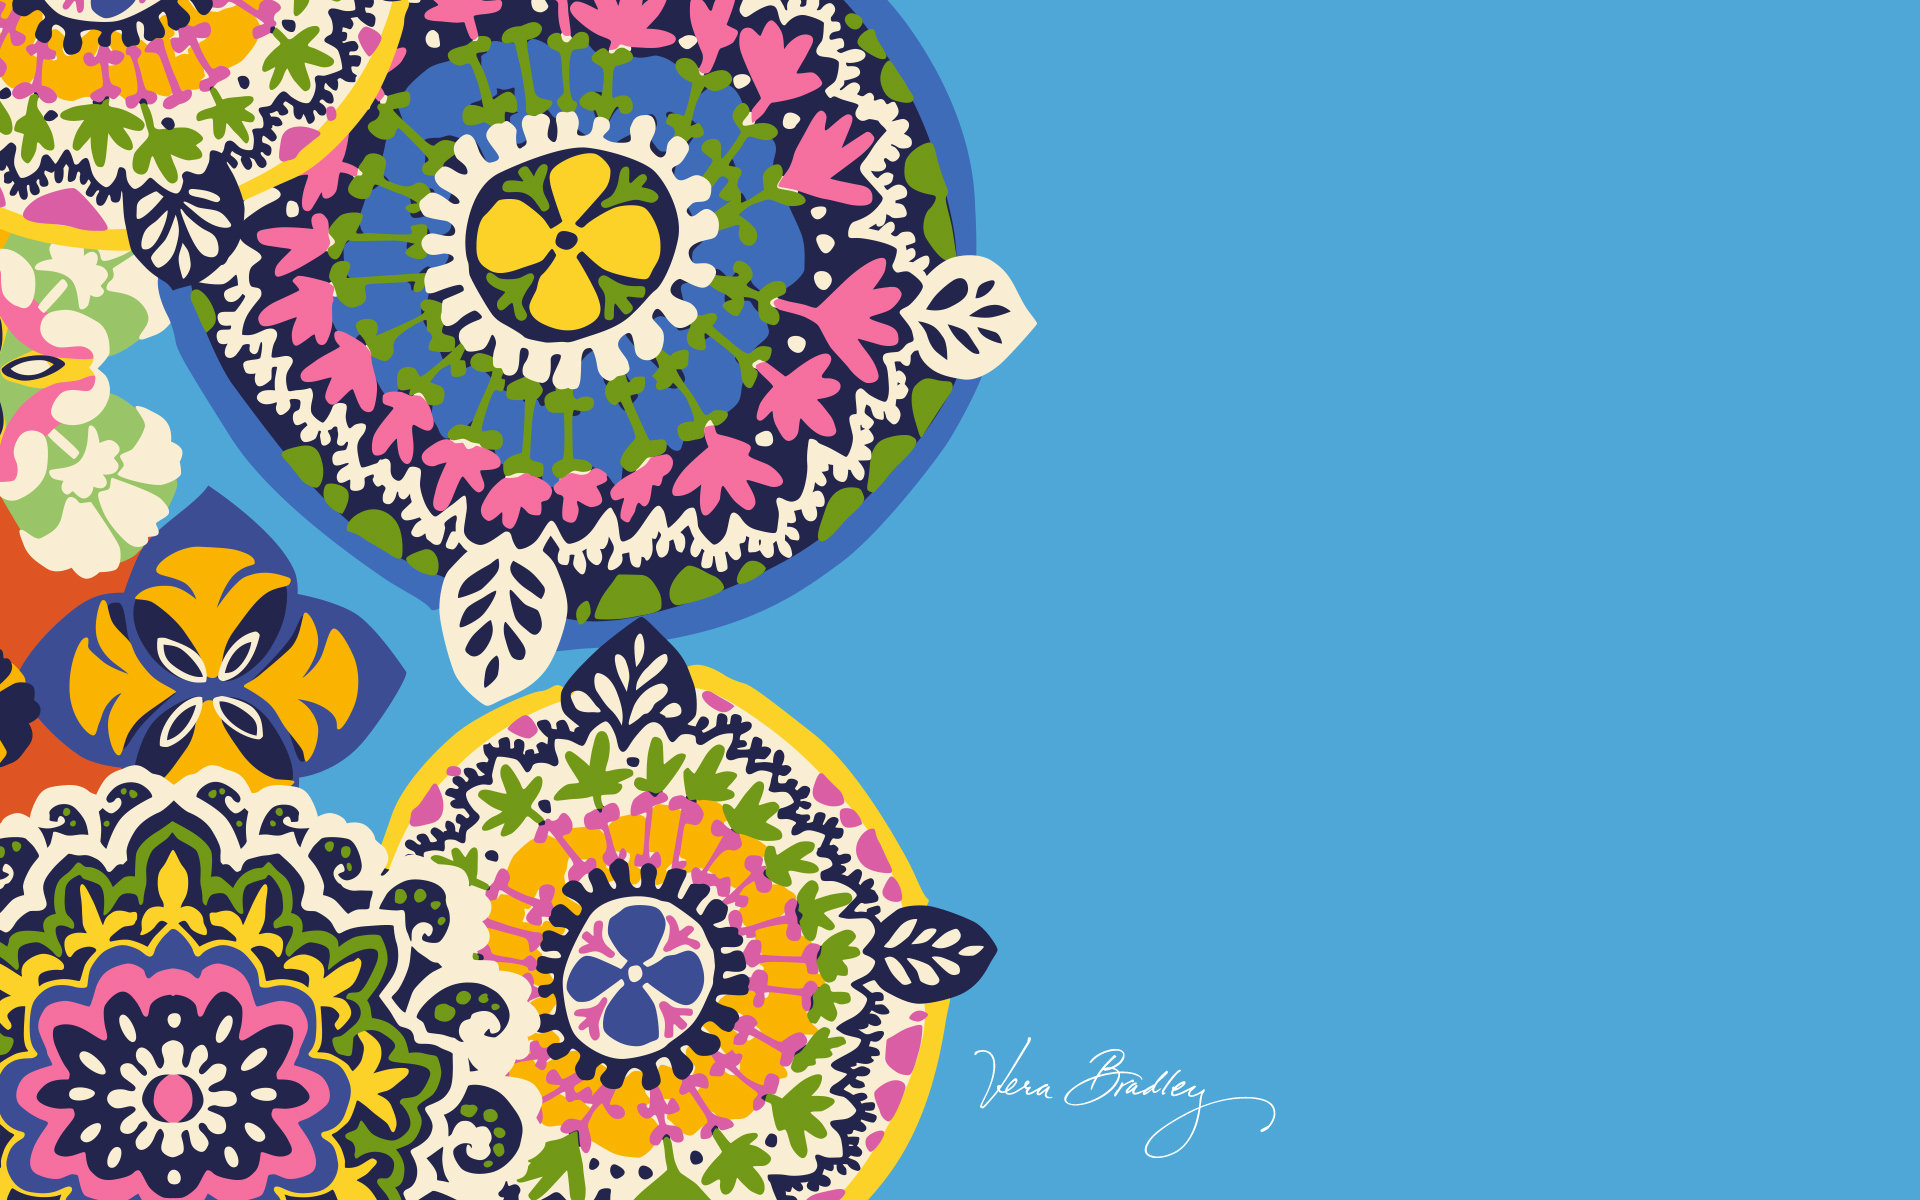 Download Vera Bradley 1920x1200 50 Vera Bradley Wallpaper